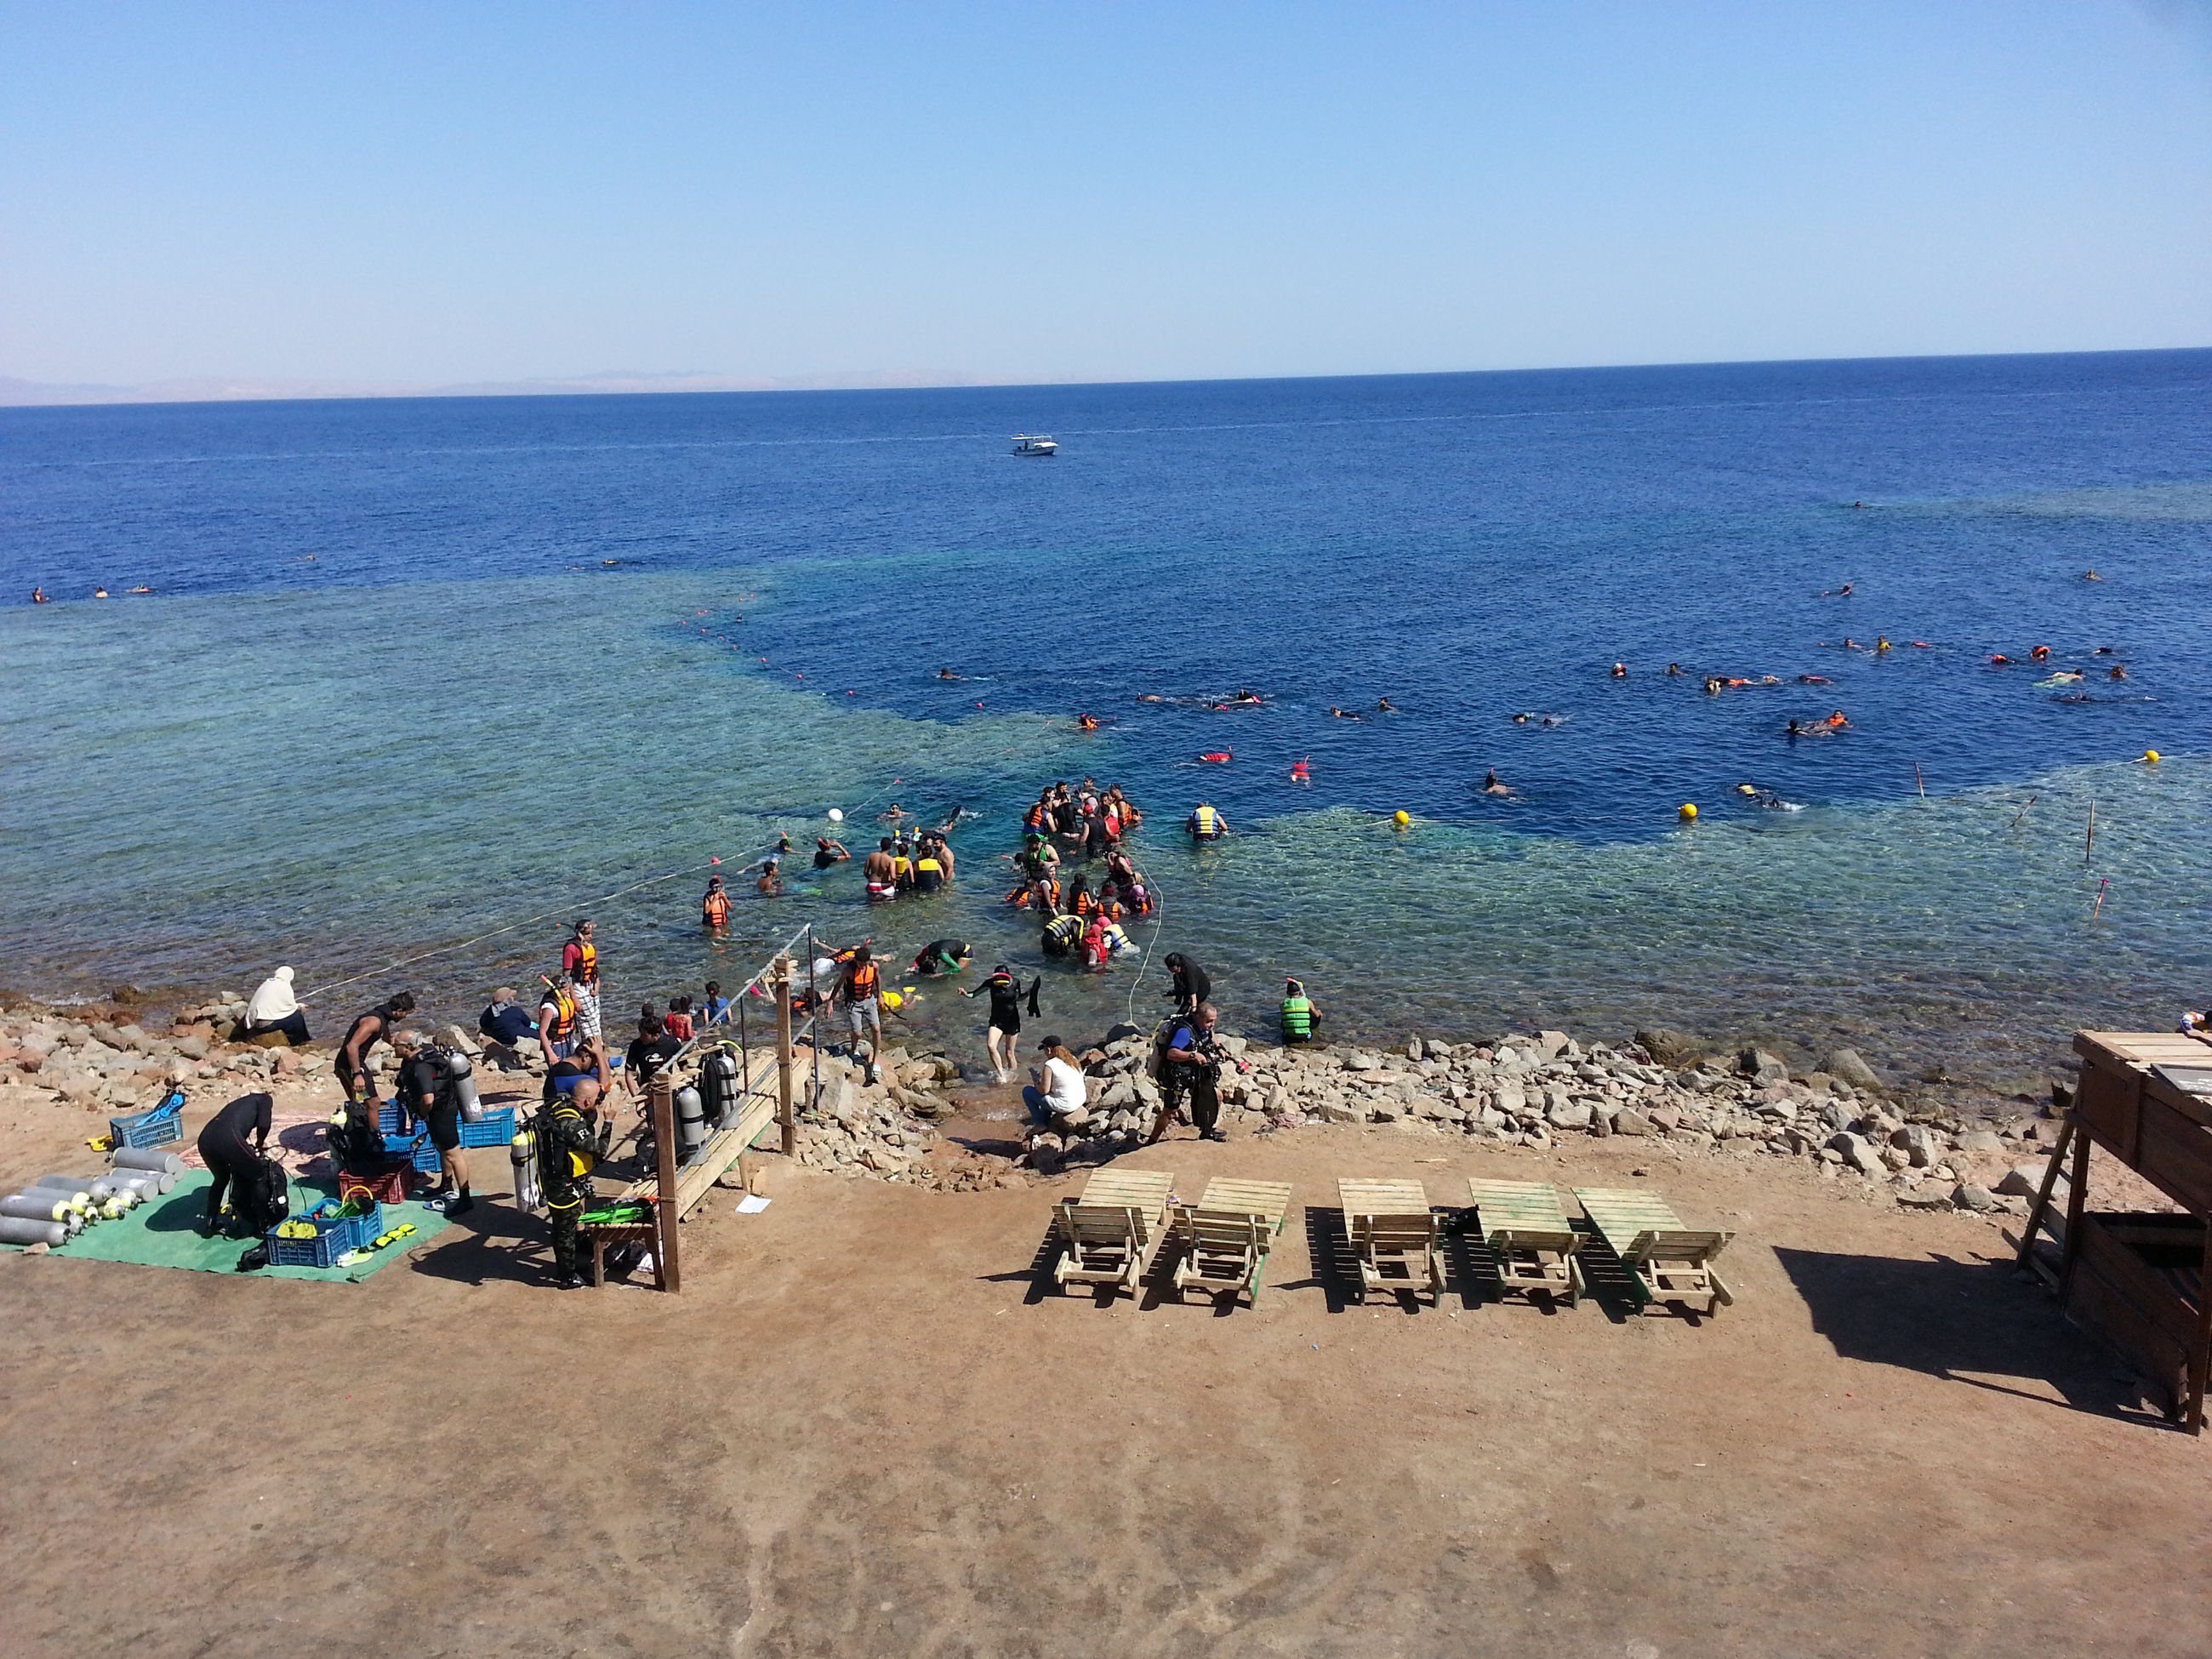 sea, horizon over water, water, clear sky, nature, large group of people, scenics, real people, beach, day, outdoors, blue, beauty in nature, sky, men, people